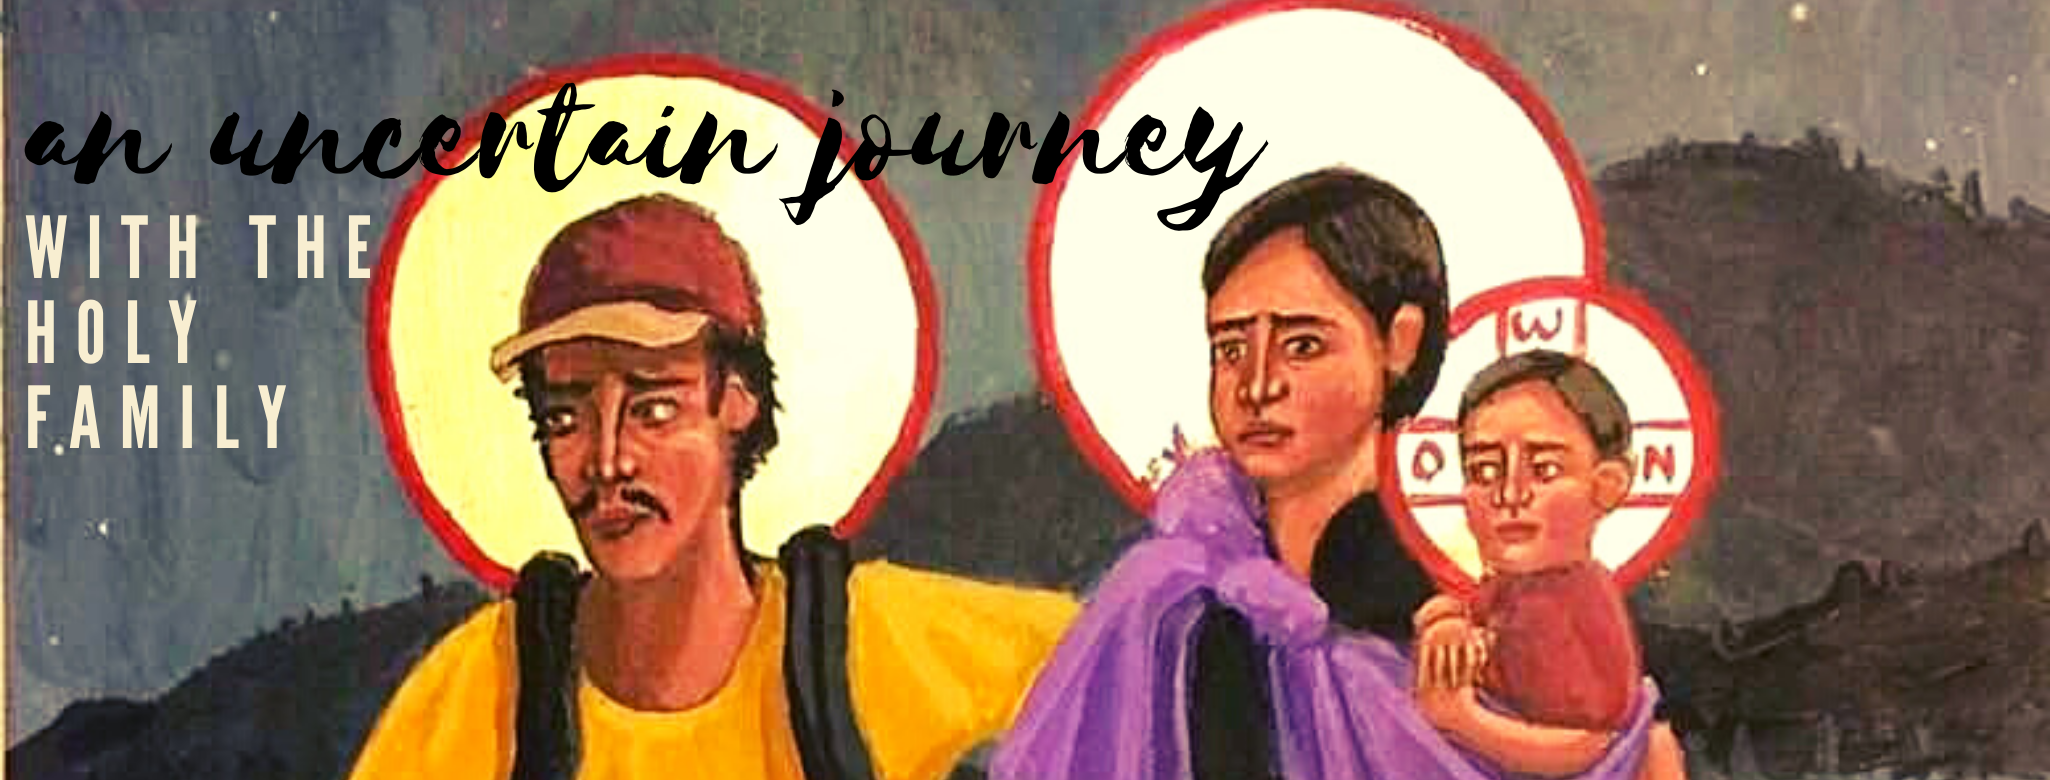 An Uncertain Journey with the Holy Family.png